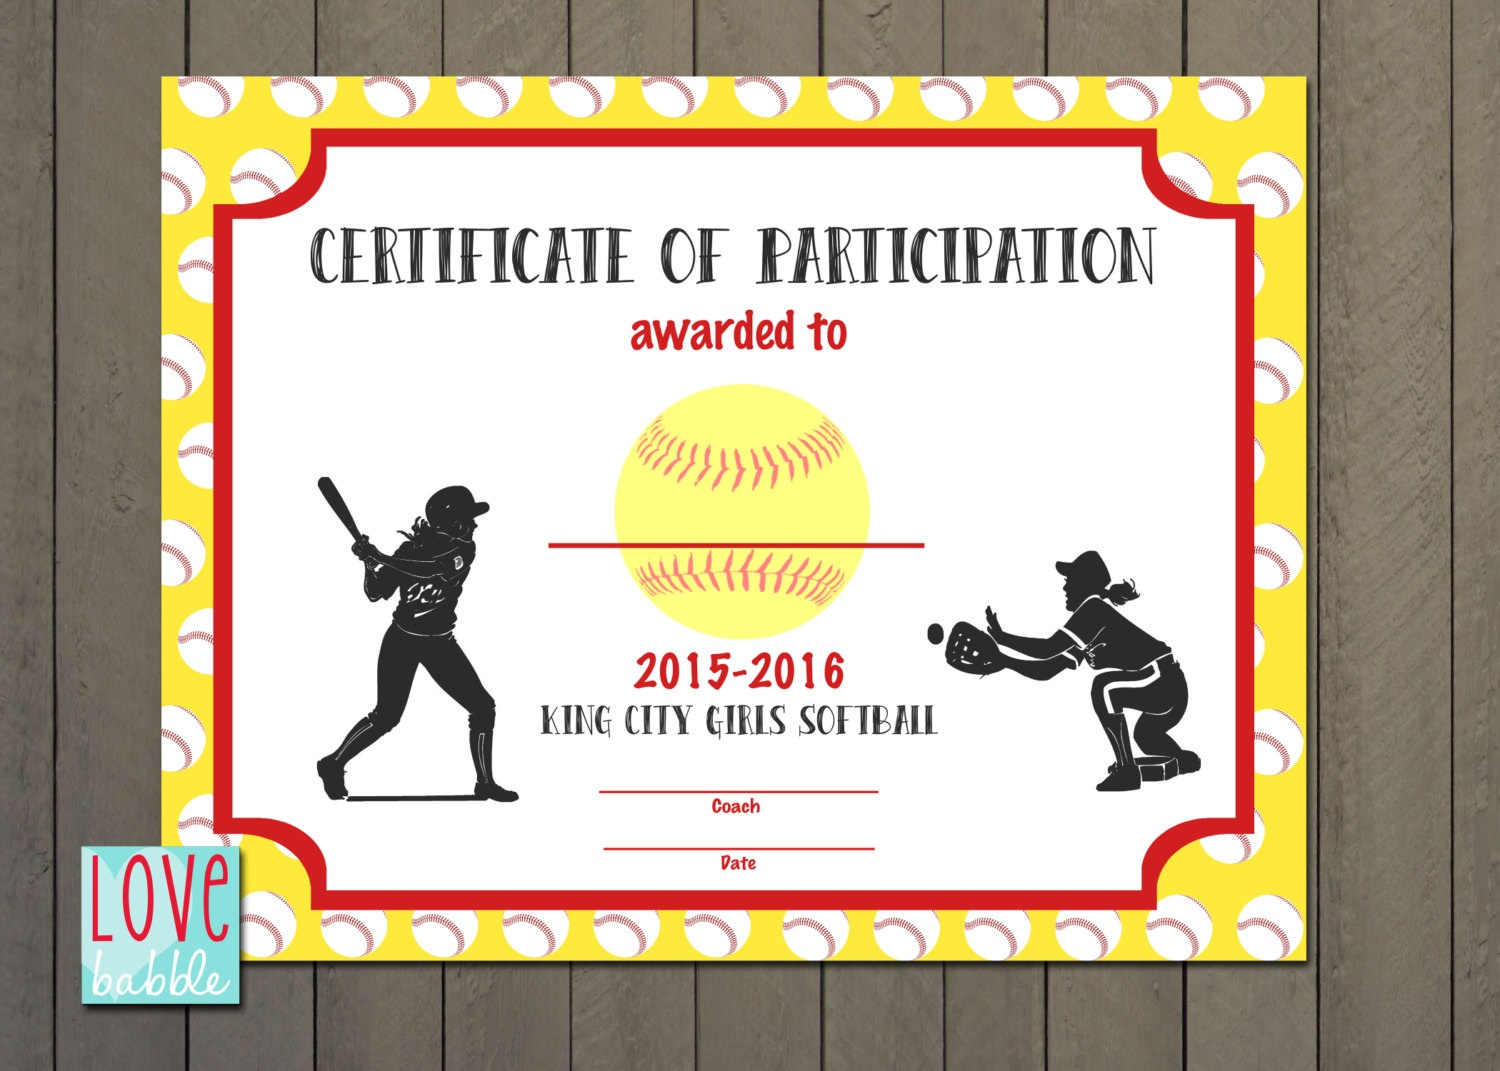 Softball Certificate Templates Free - Tutlin.psstech.co - Free Printable Softball Pictures